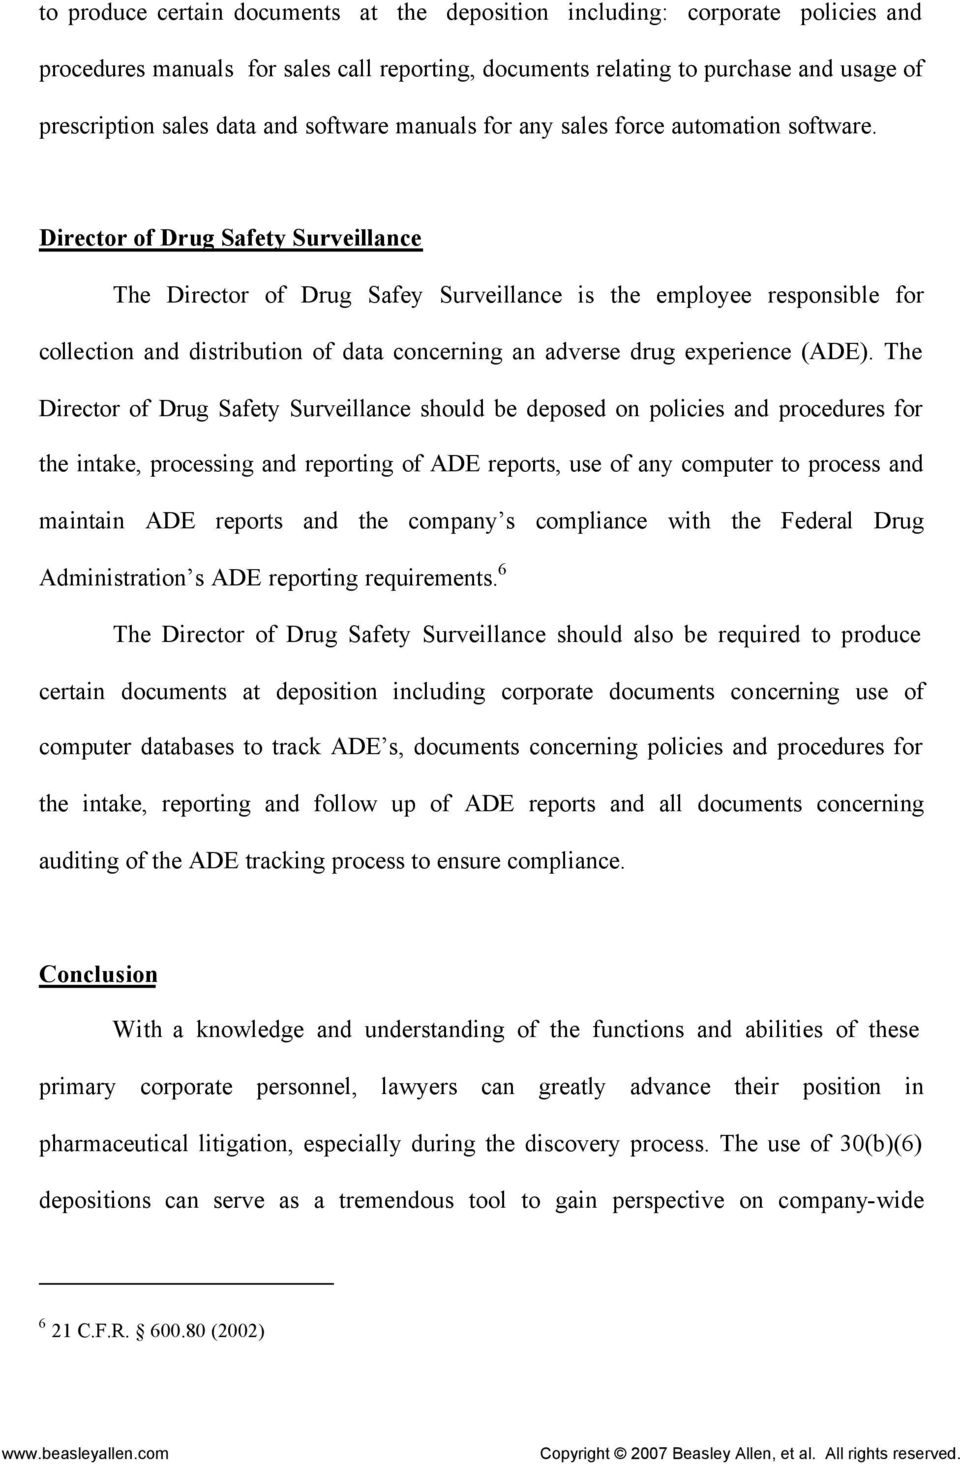 Director of Drug Safety Surveillance The Director of Drug Safey Surveillance is the employee responsible for collection and distribution of data concerning an adverse drug experience (ADE).